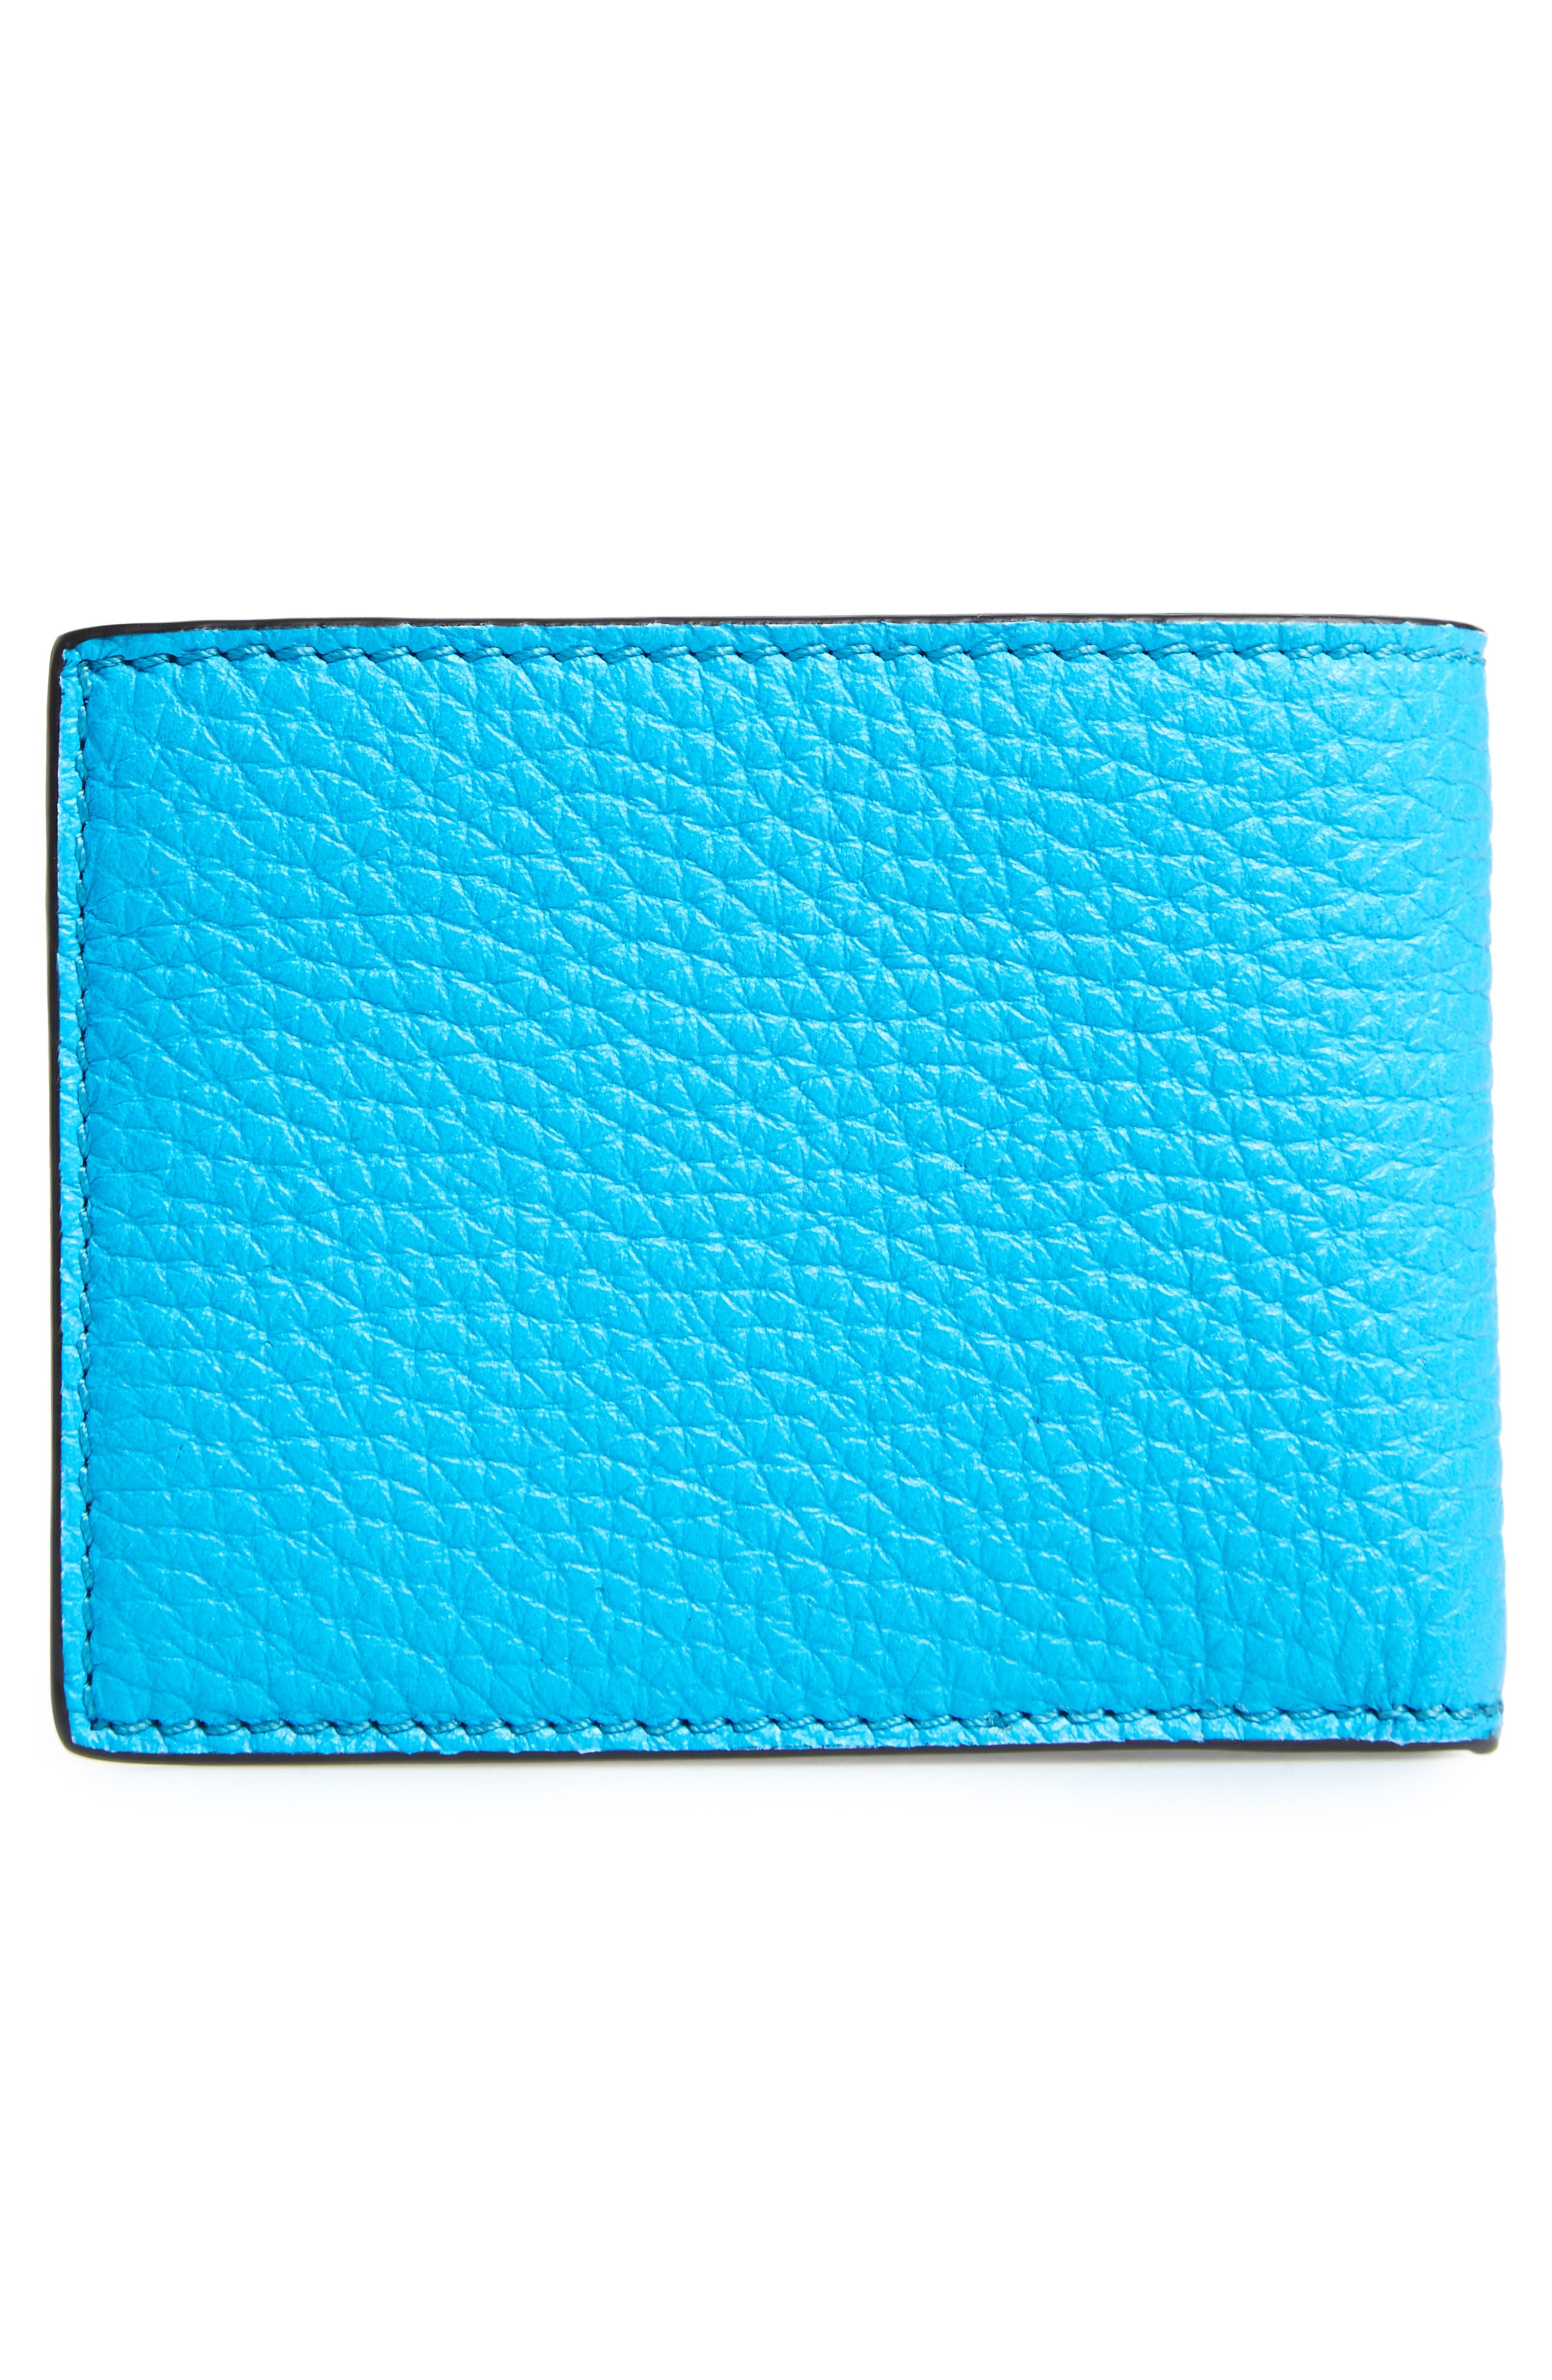 Leather Bifold Wallet,                             Alternate thumbnail 3, color,                             437